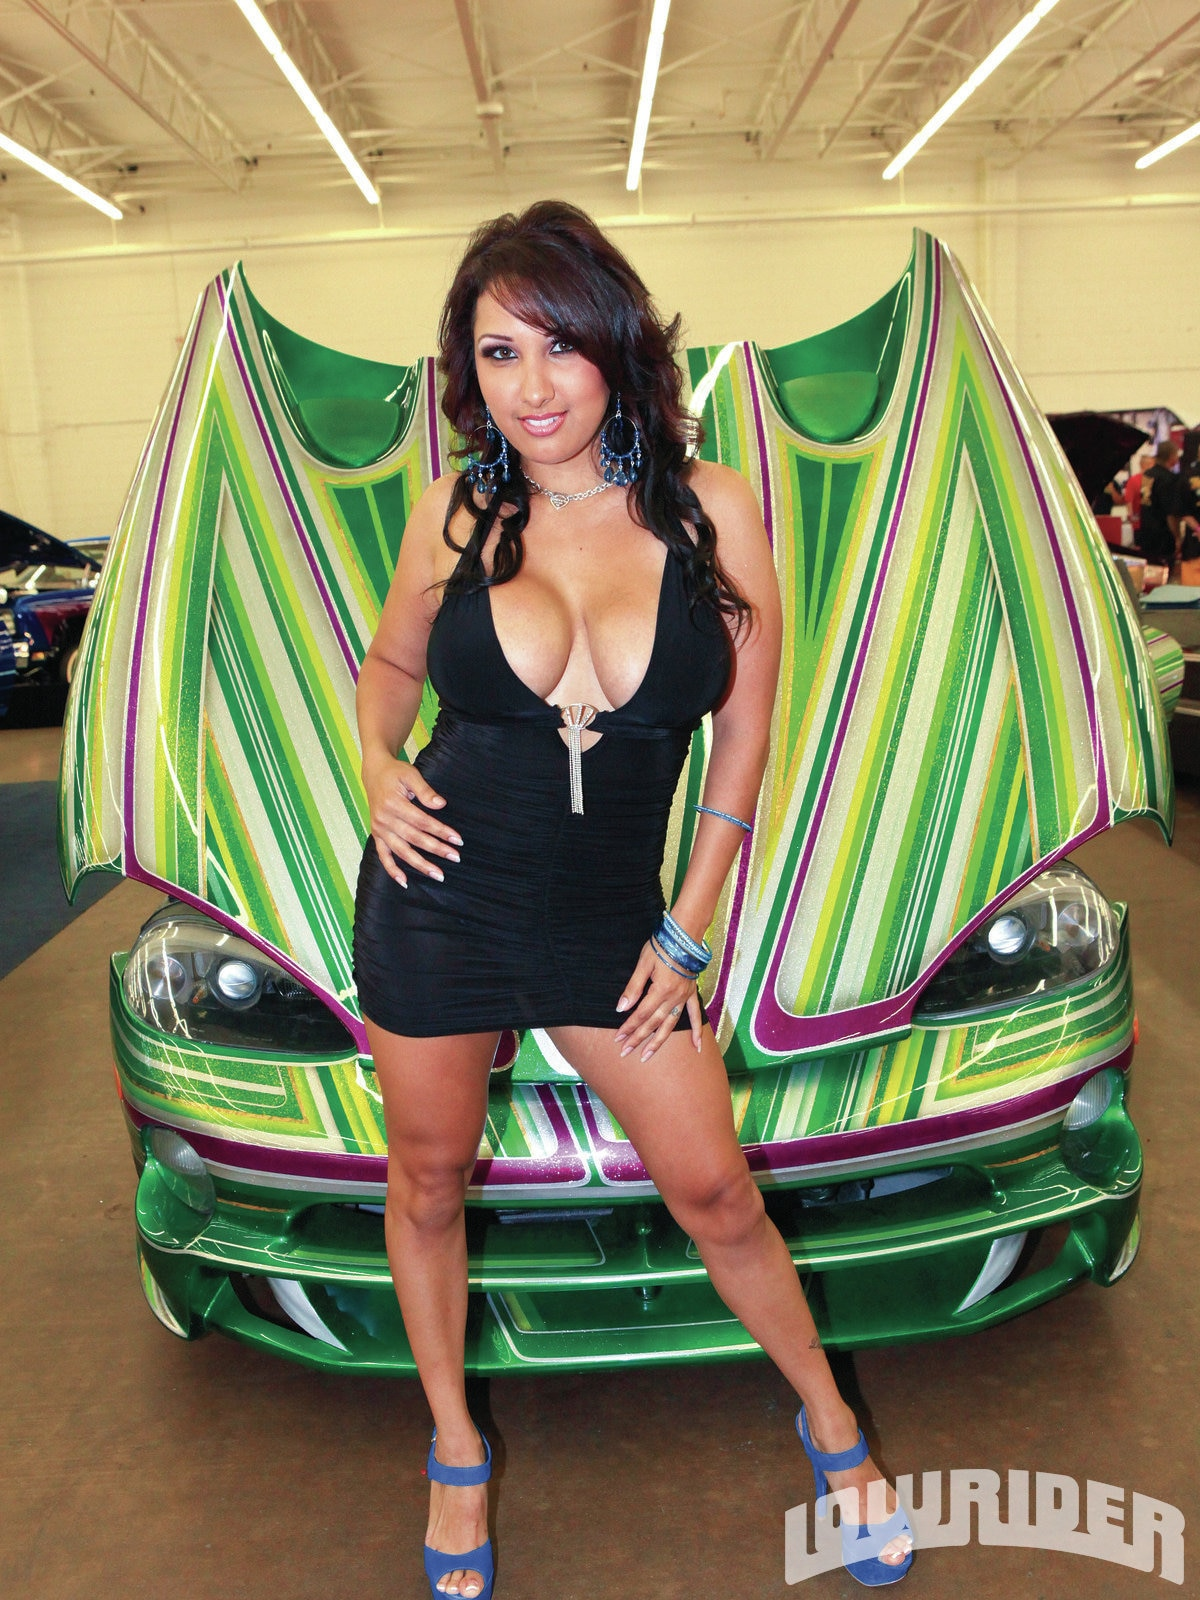 Lowrider bikini contest opinion